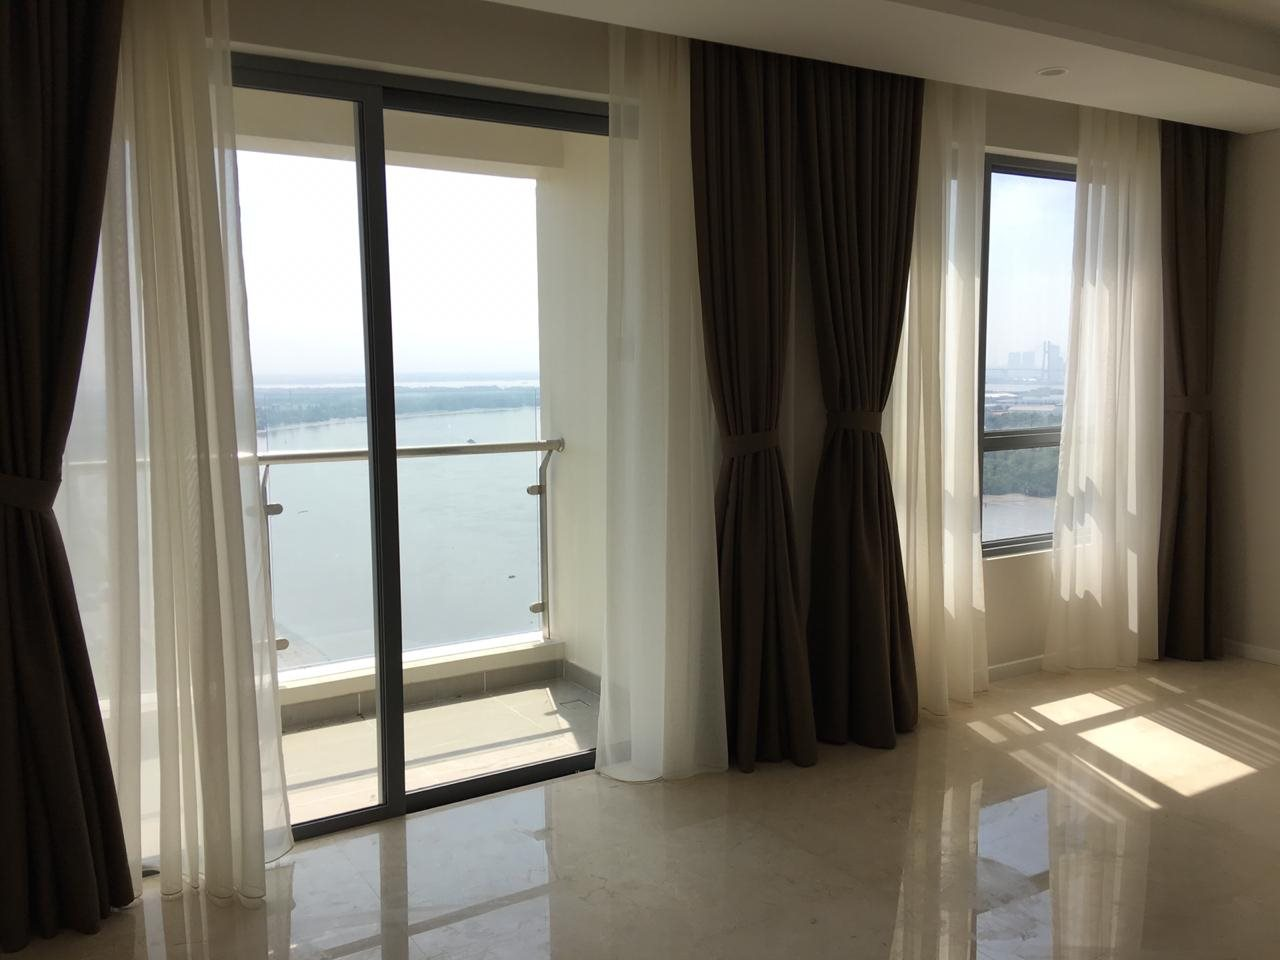 DI0810 - Diamond Island Apartment For Rent & Sale in Ho Chi Minh City - 2 bedroom